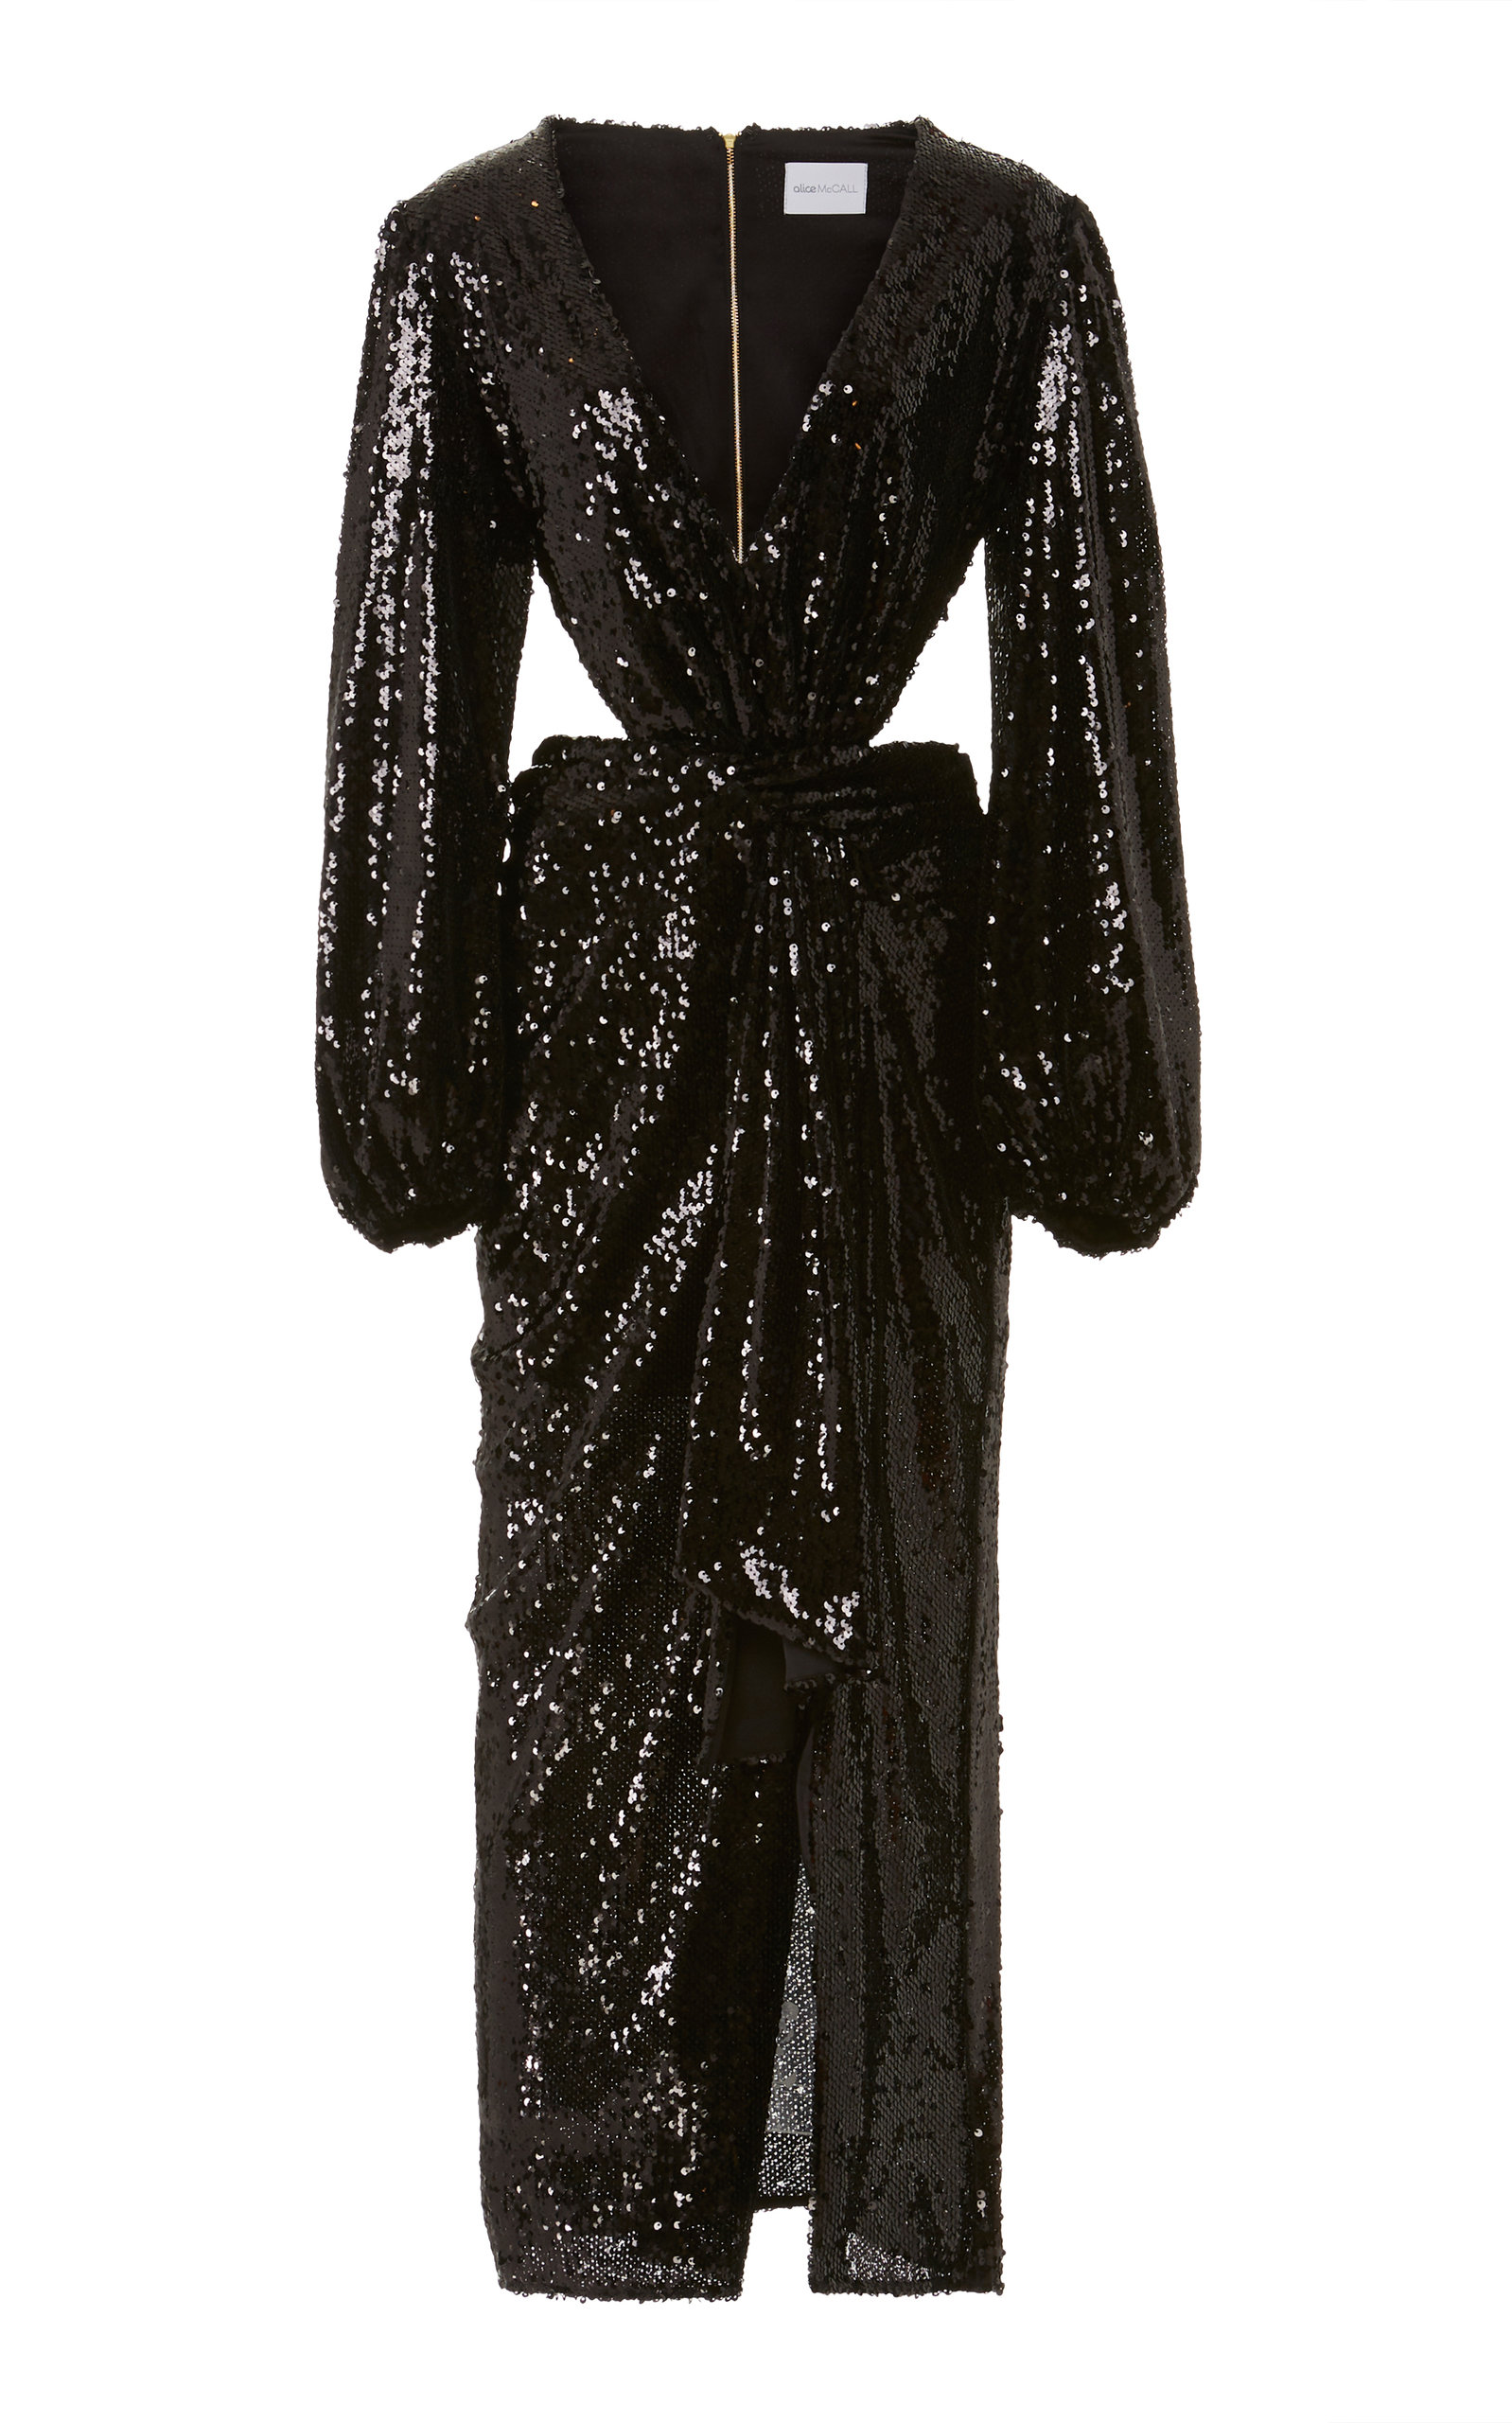 Alice Mccall Dresses Electric Orchid Sequined-Chiffon Gown